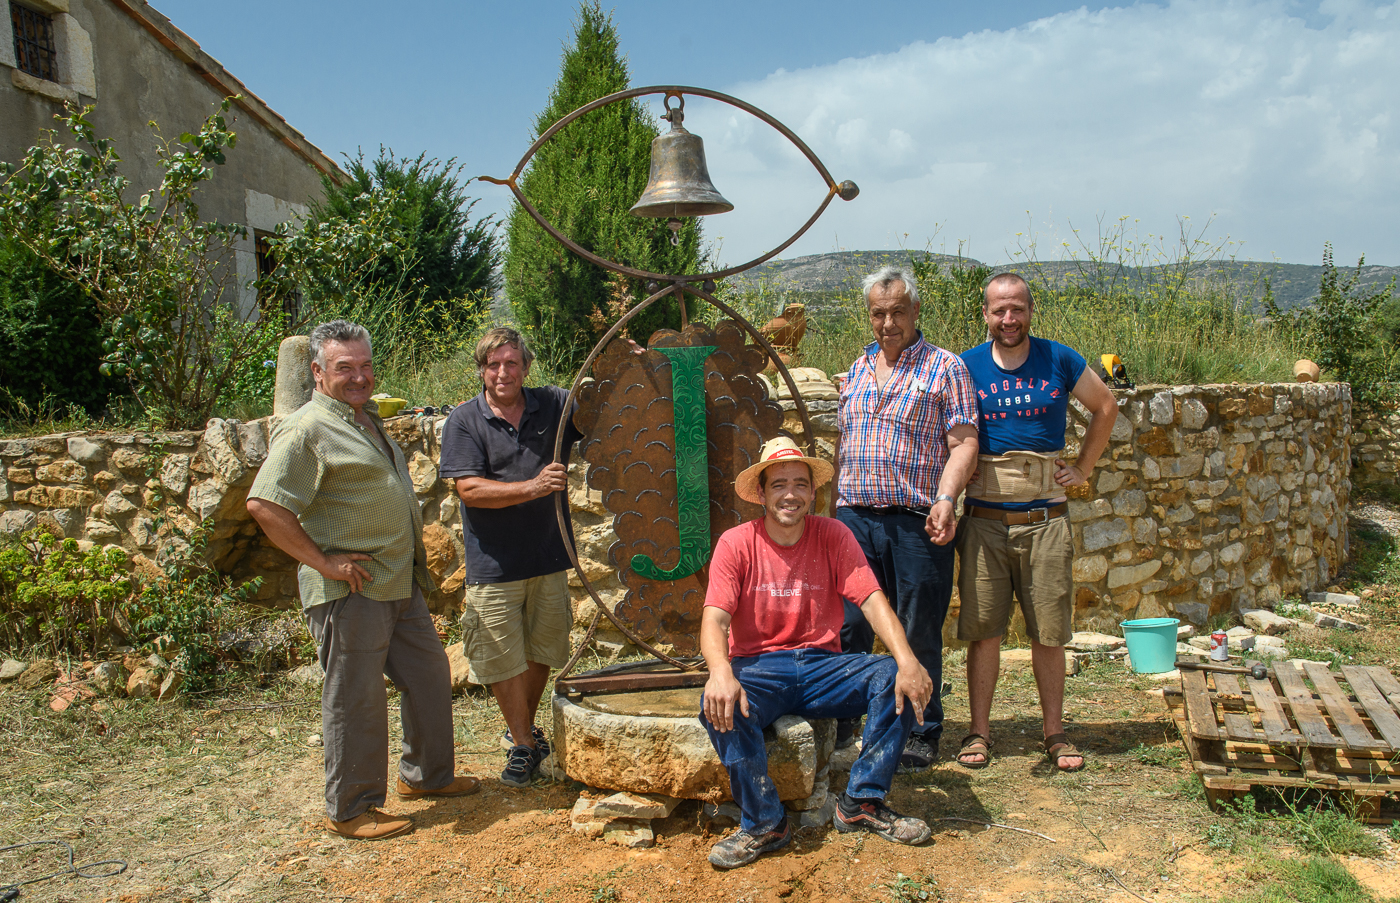 The bell installation group